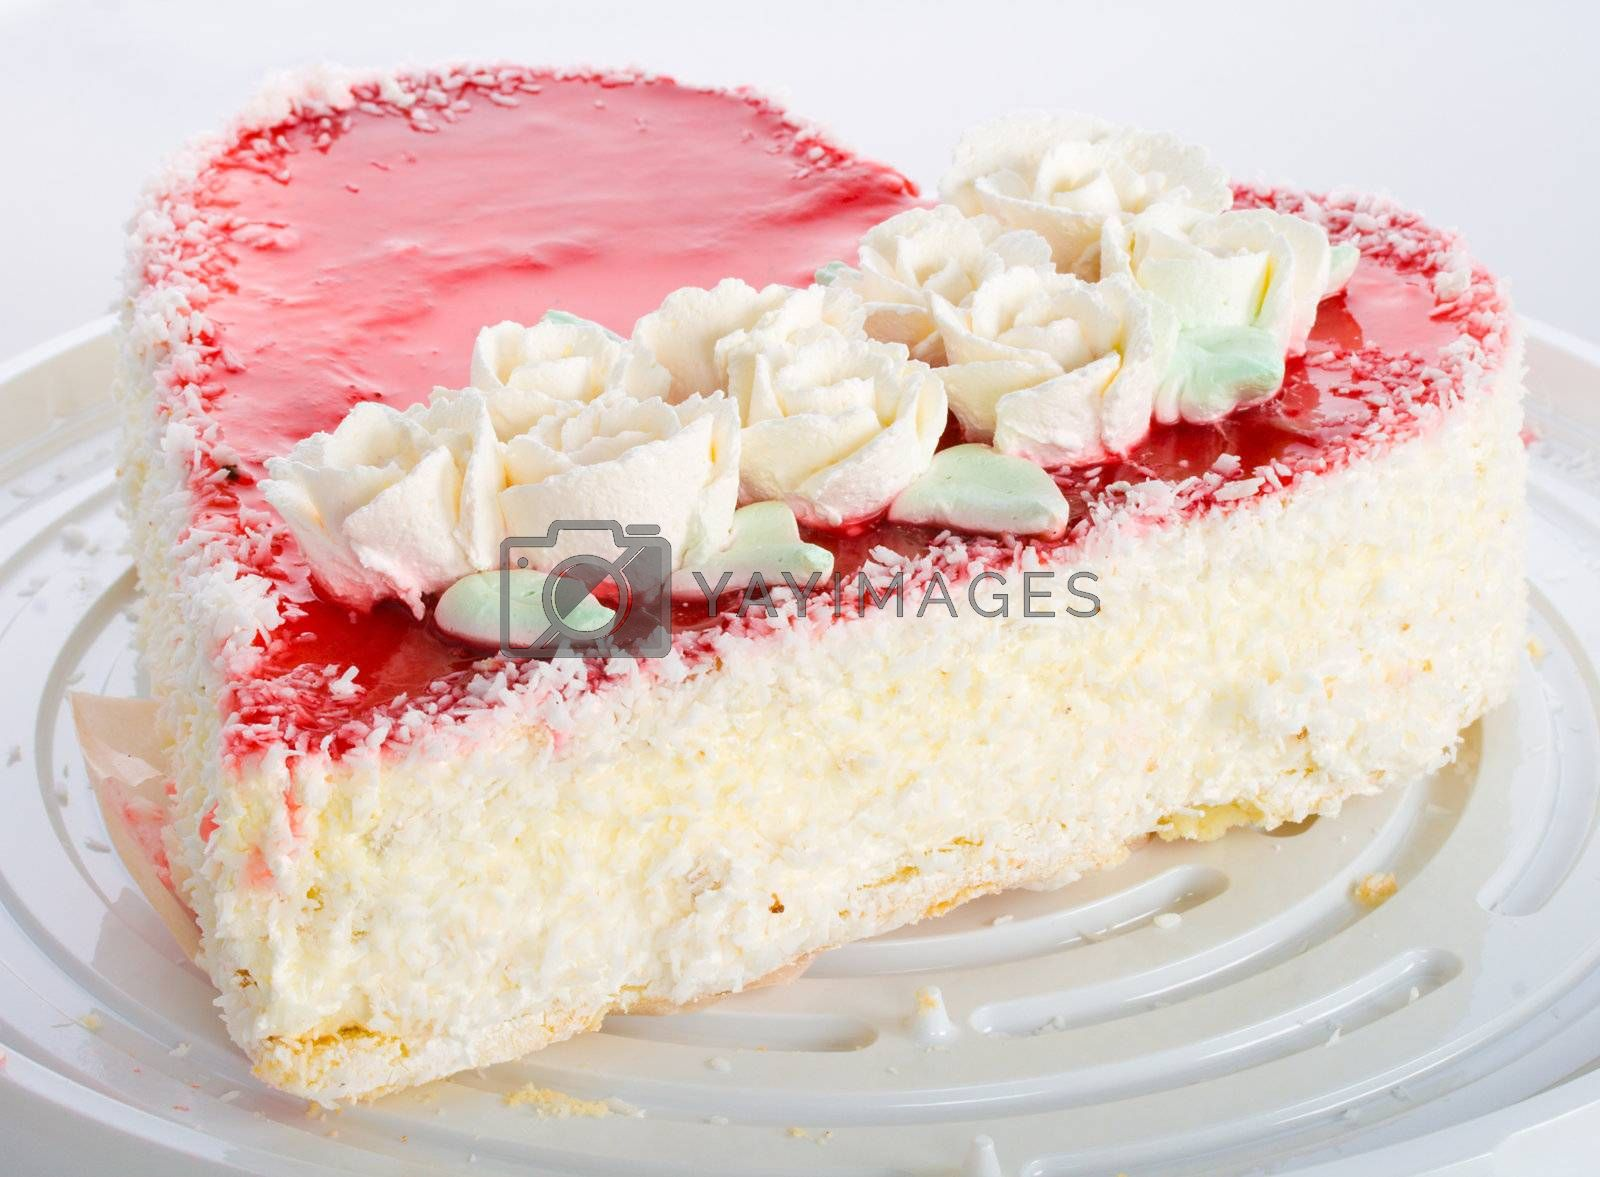 Royalty free image of heart-shaped cake by Alekcey